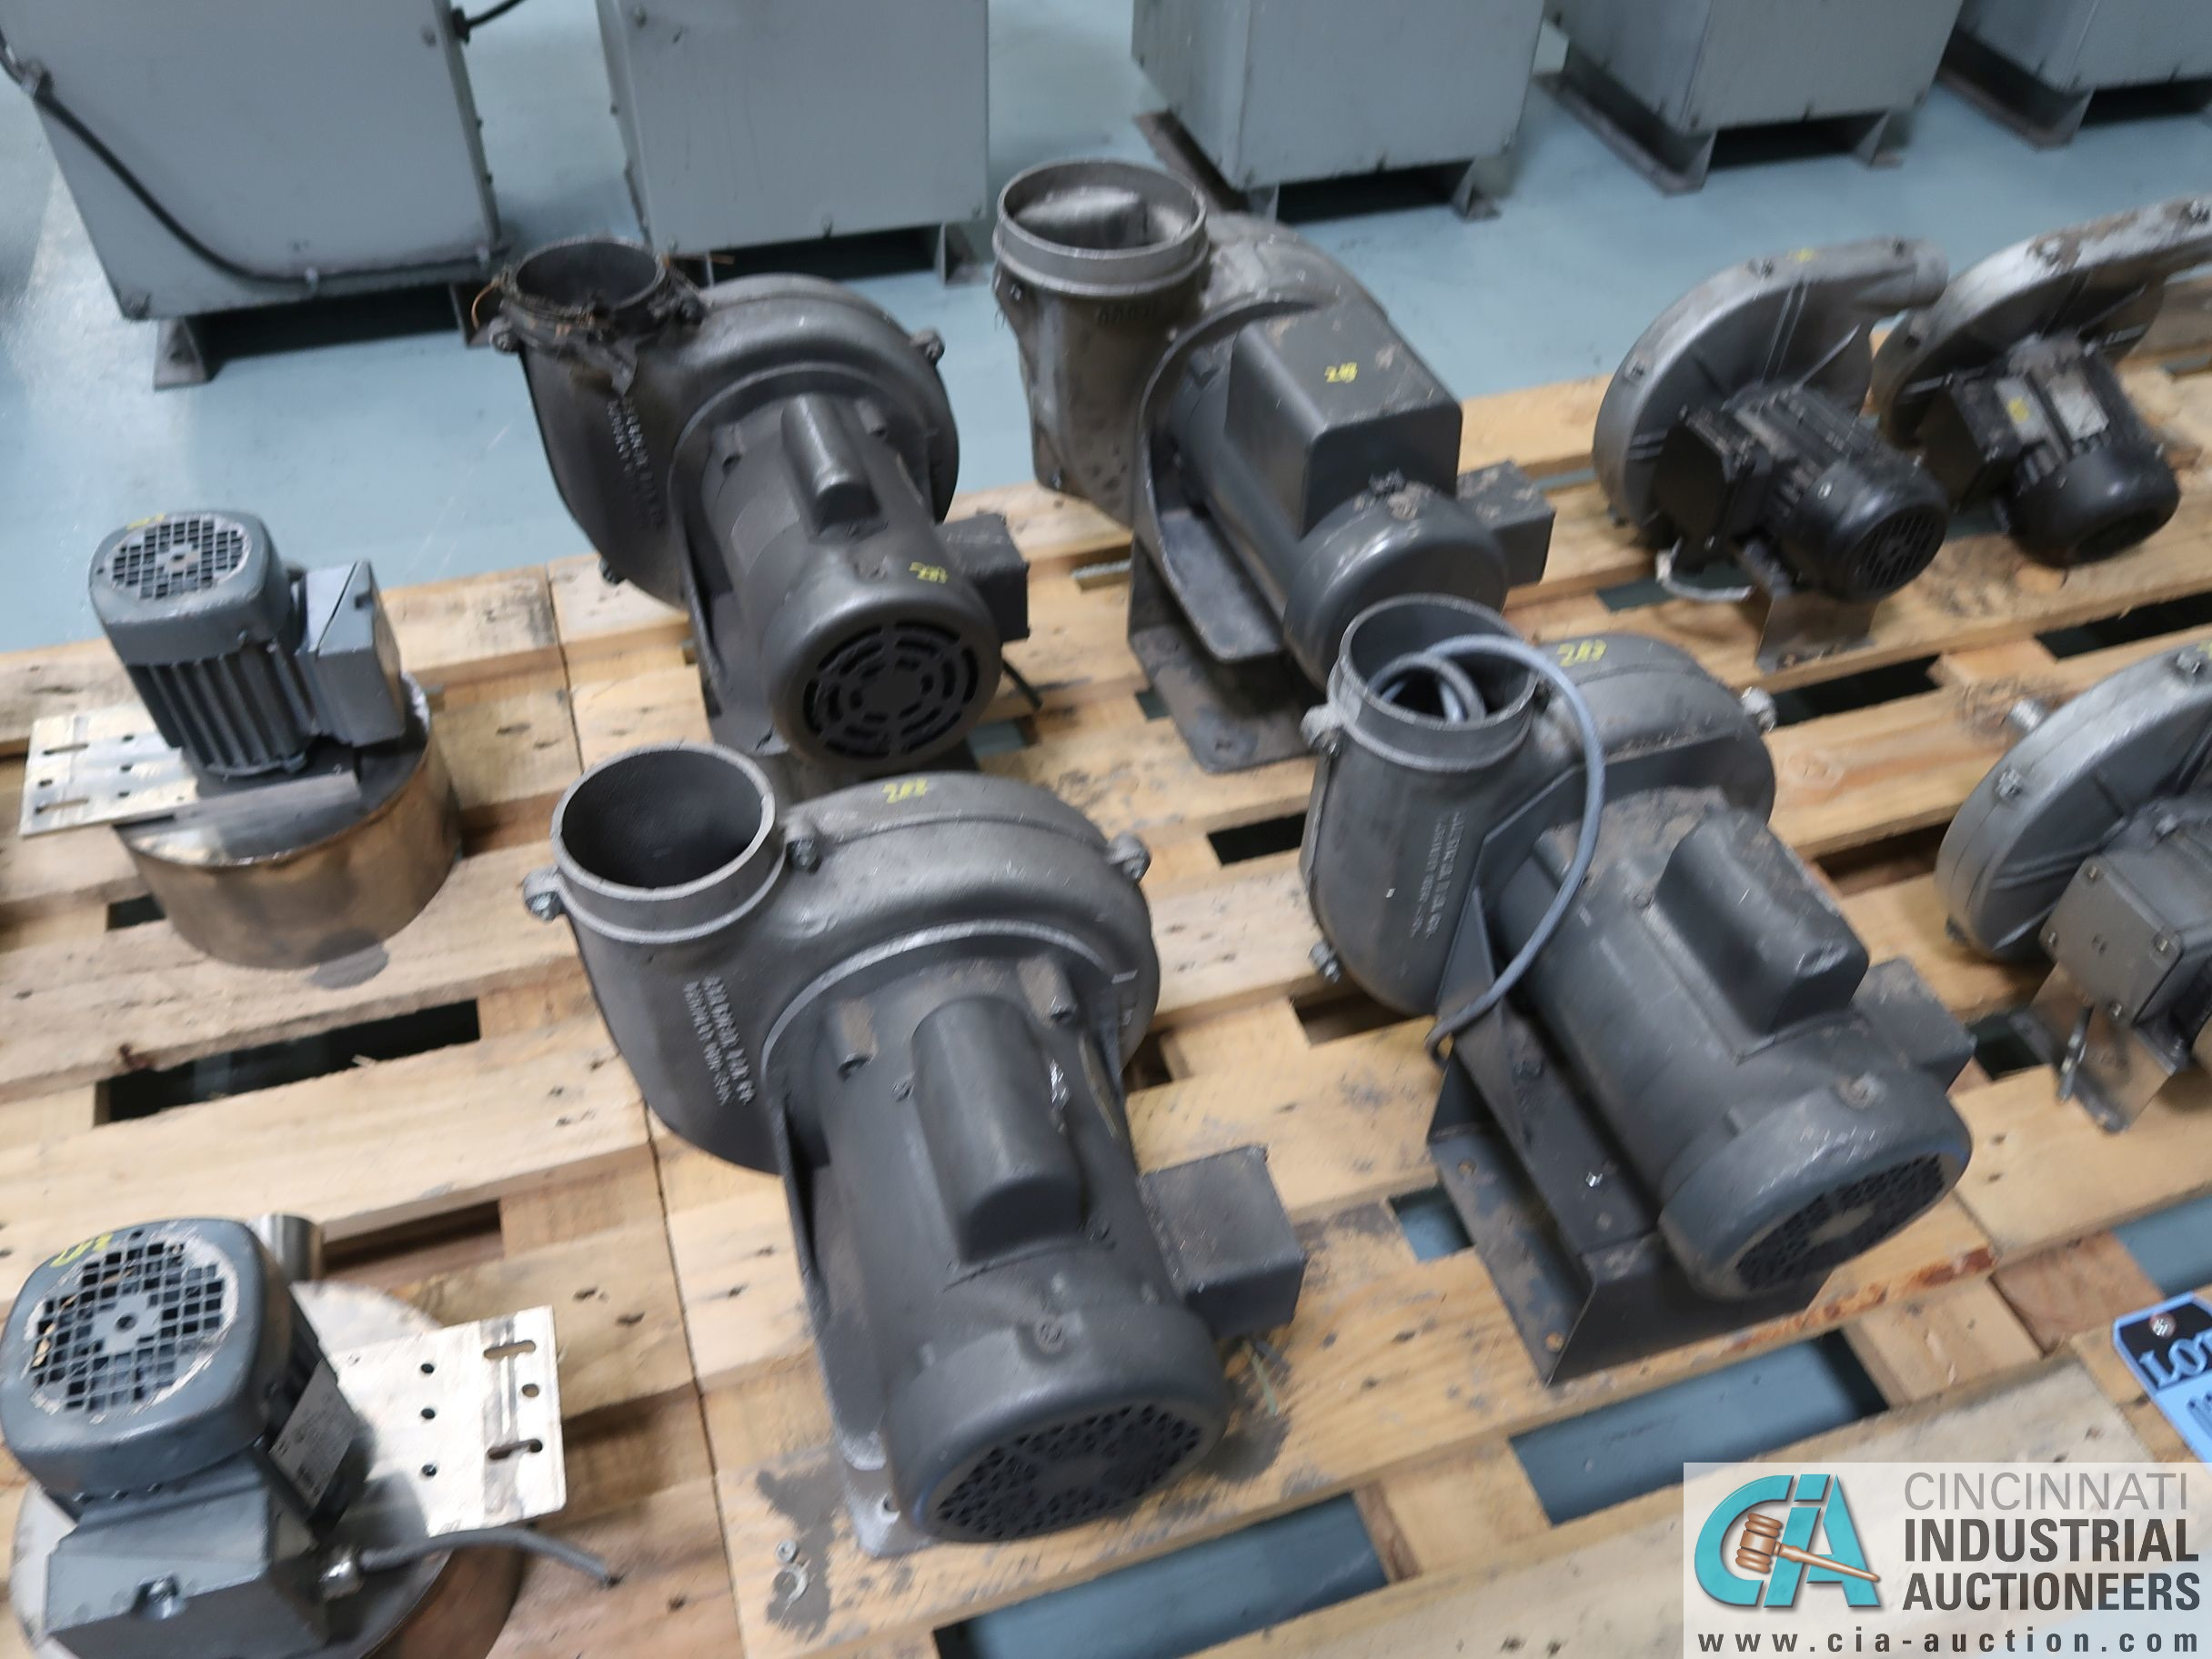 0.5 HP BLOWER MOTORS *$25.00 RIGGING FEE DUE TO INDUSTRIAL SERVICES AND SALES*